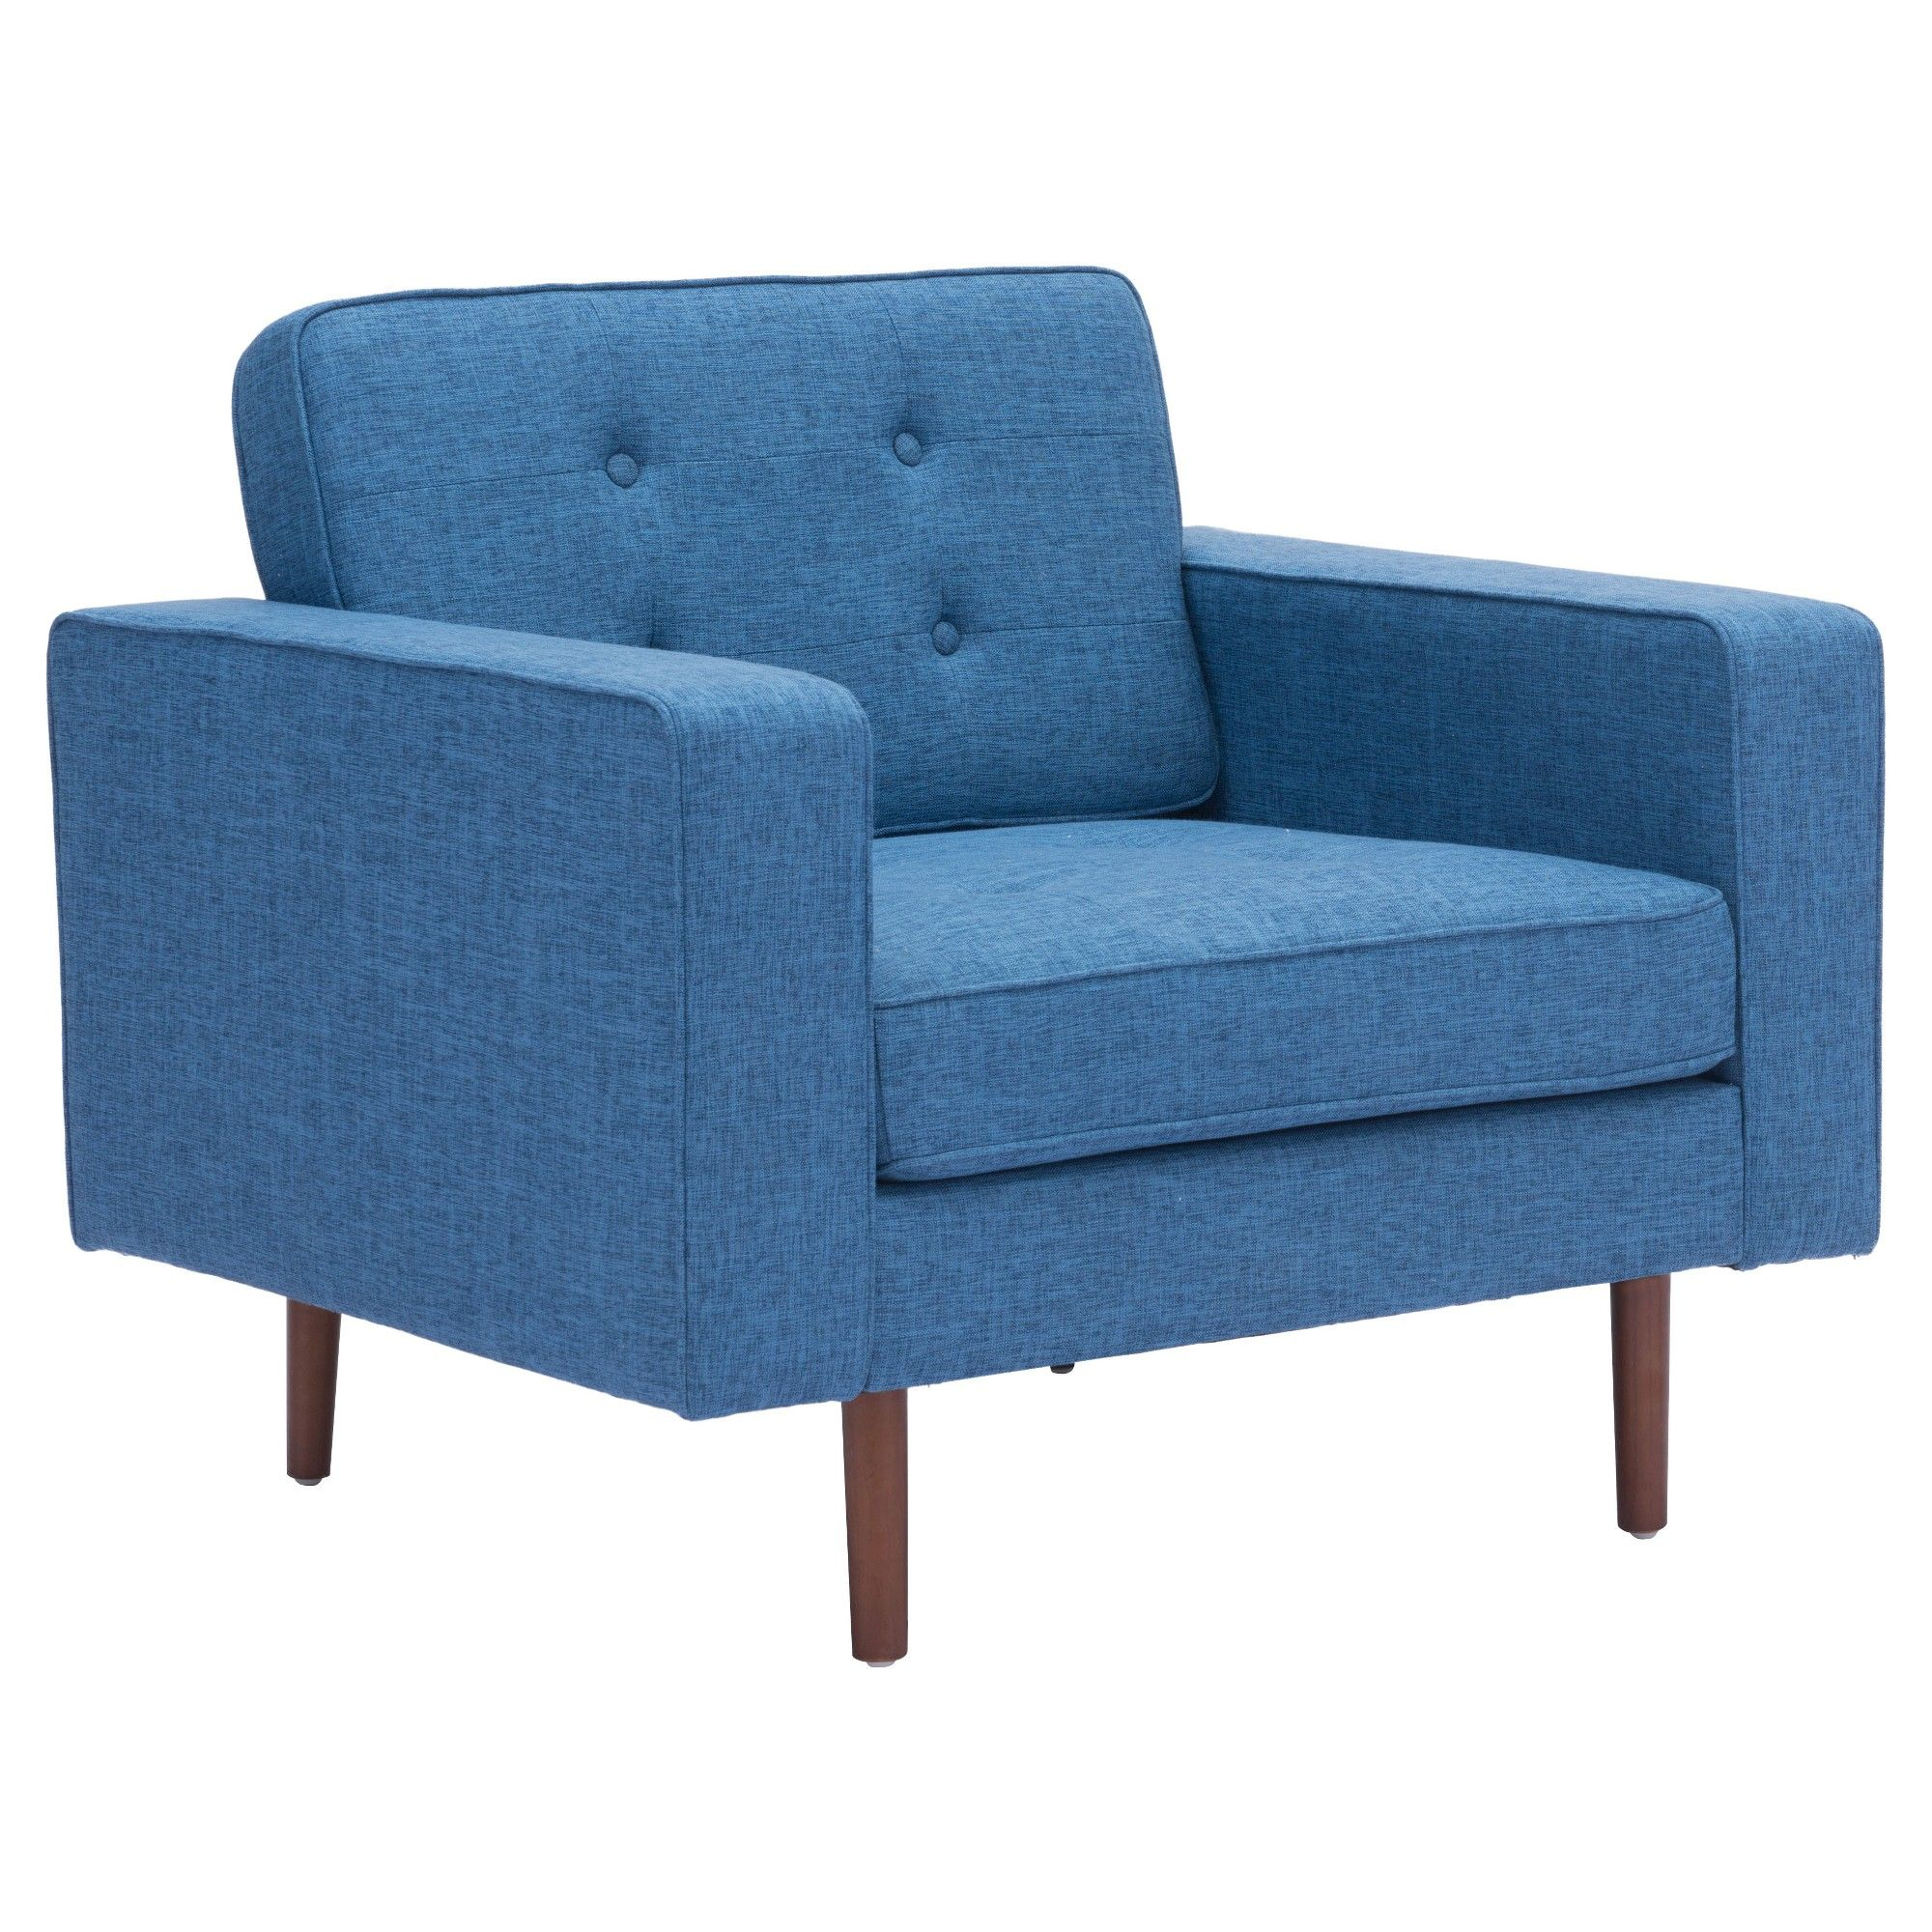 Tufted MidCentury Modern Upholstered Arm Chair ZM Home